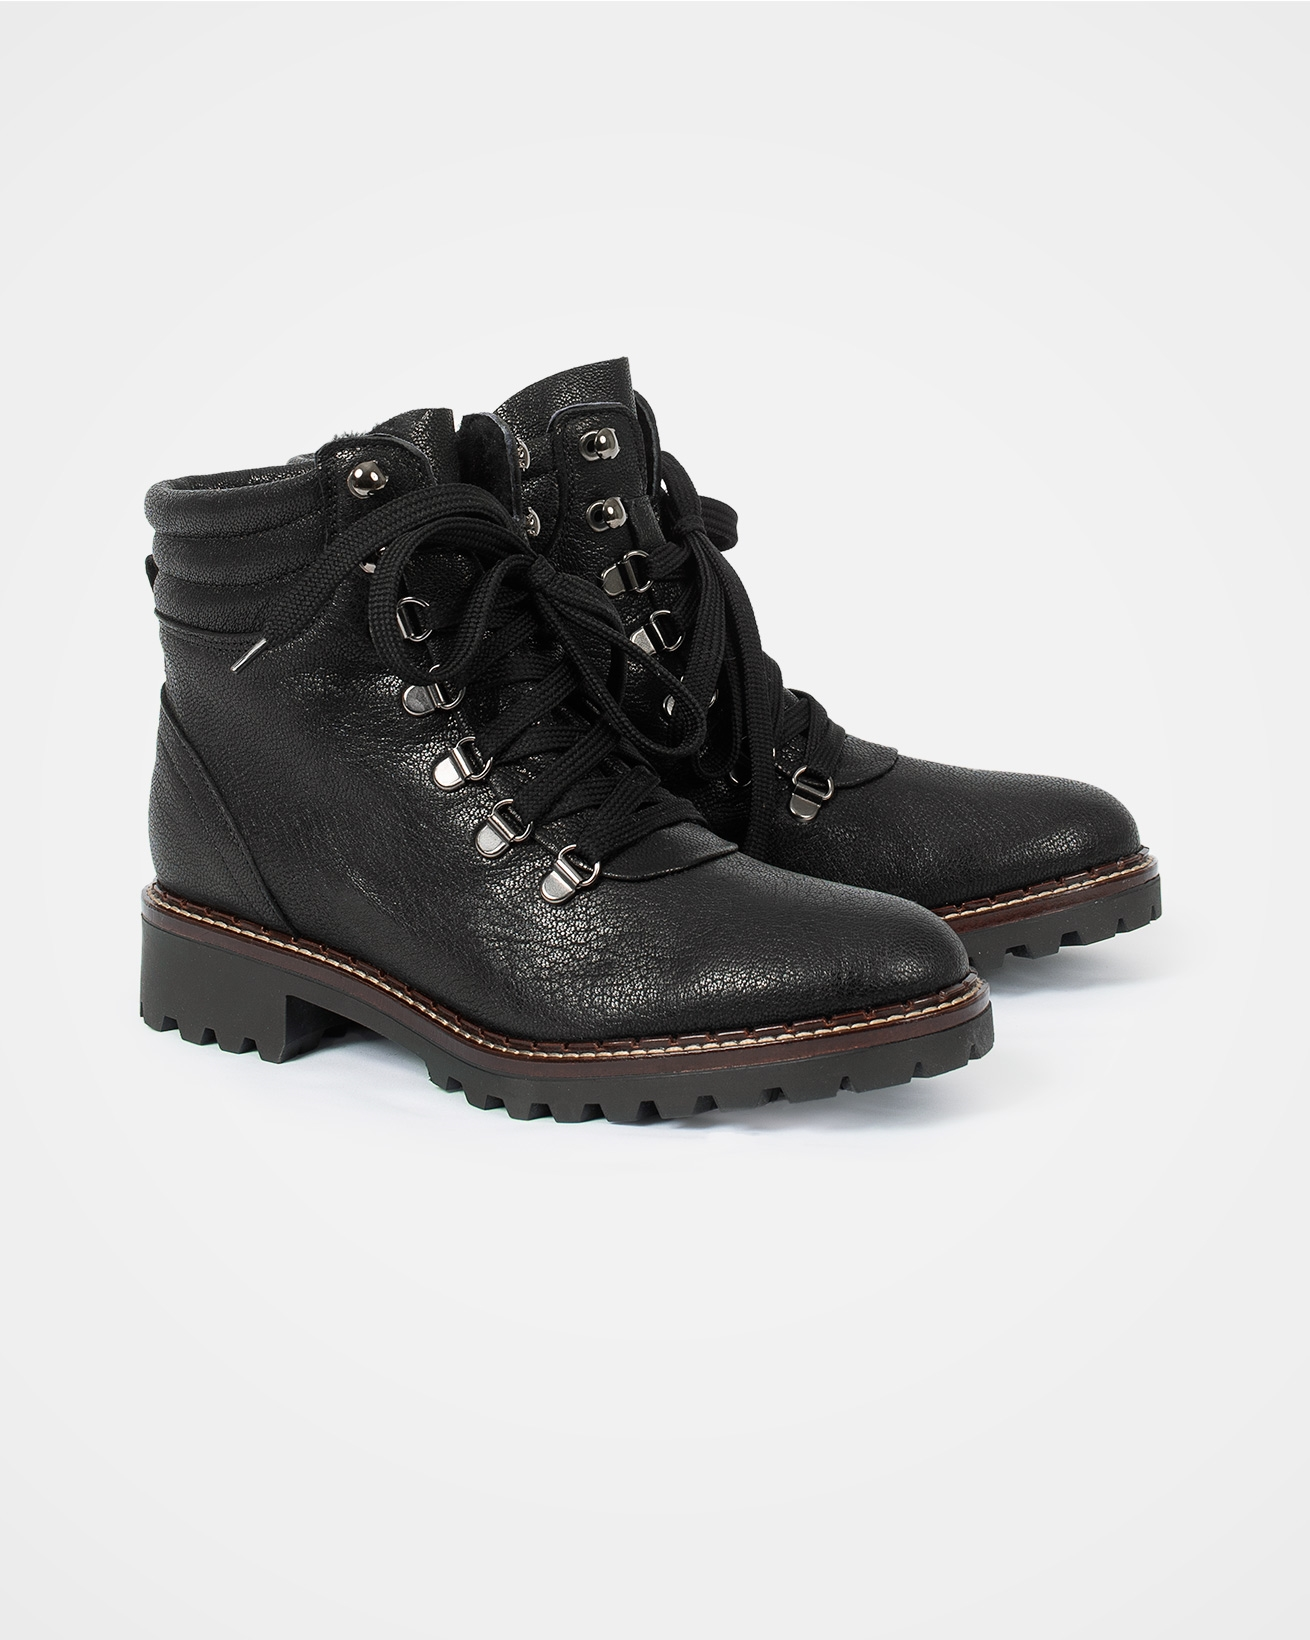 7621_hiker-boot_black-leather_pair.jpg